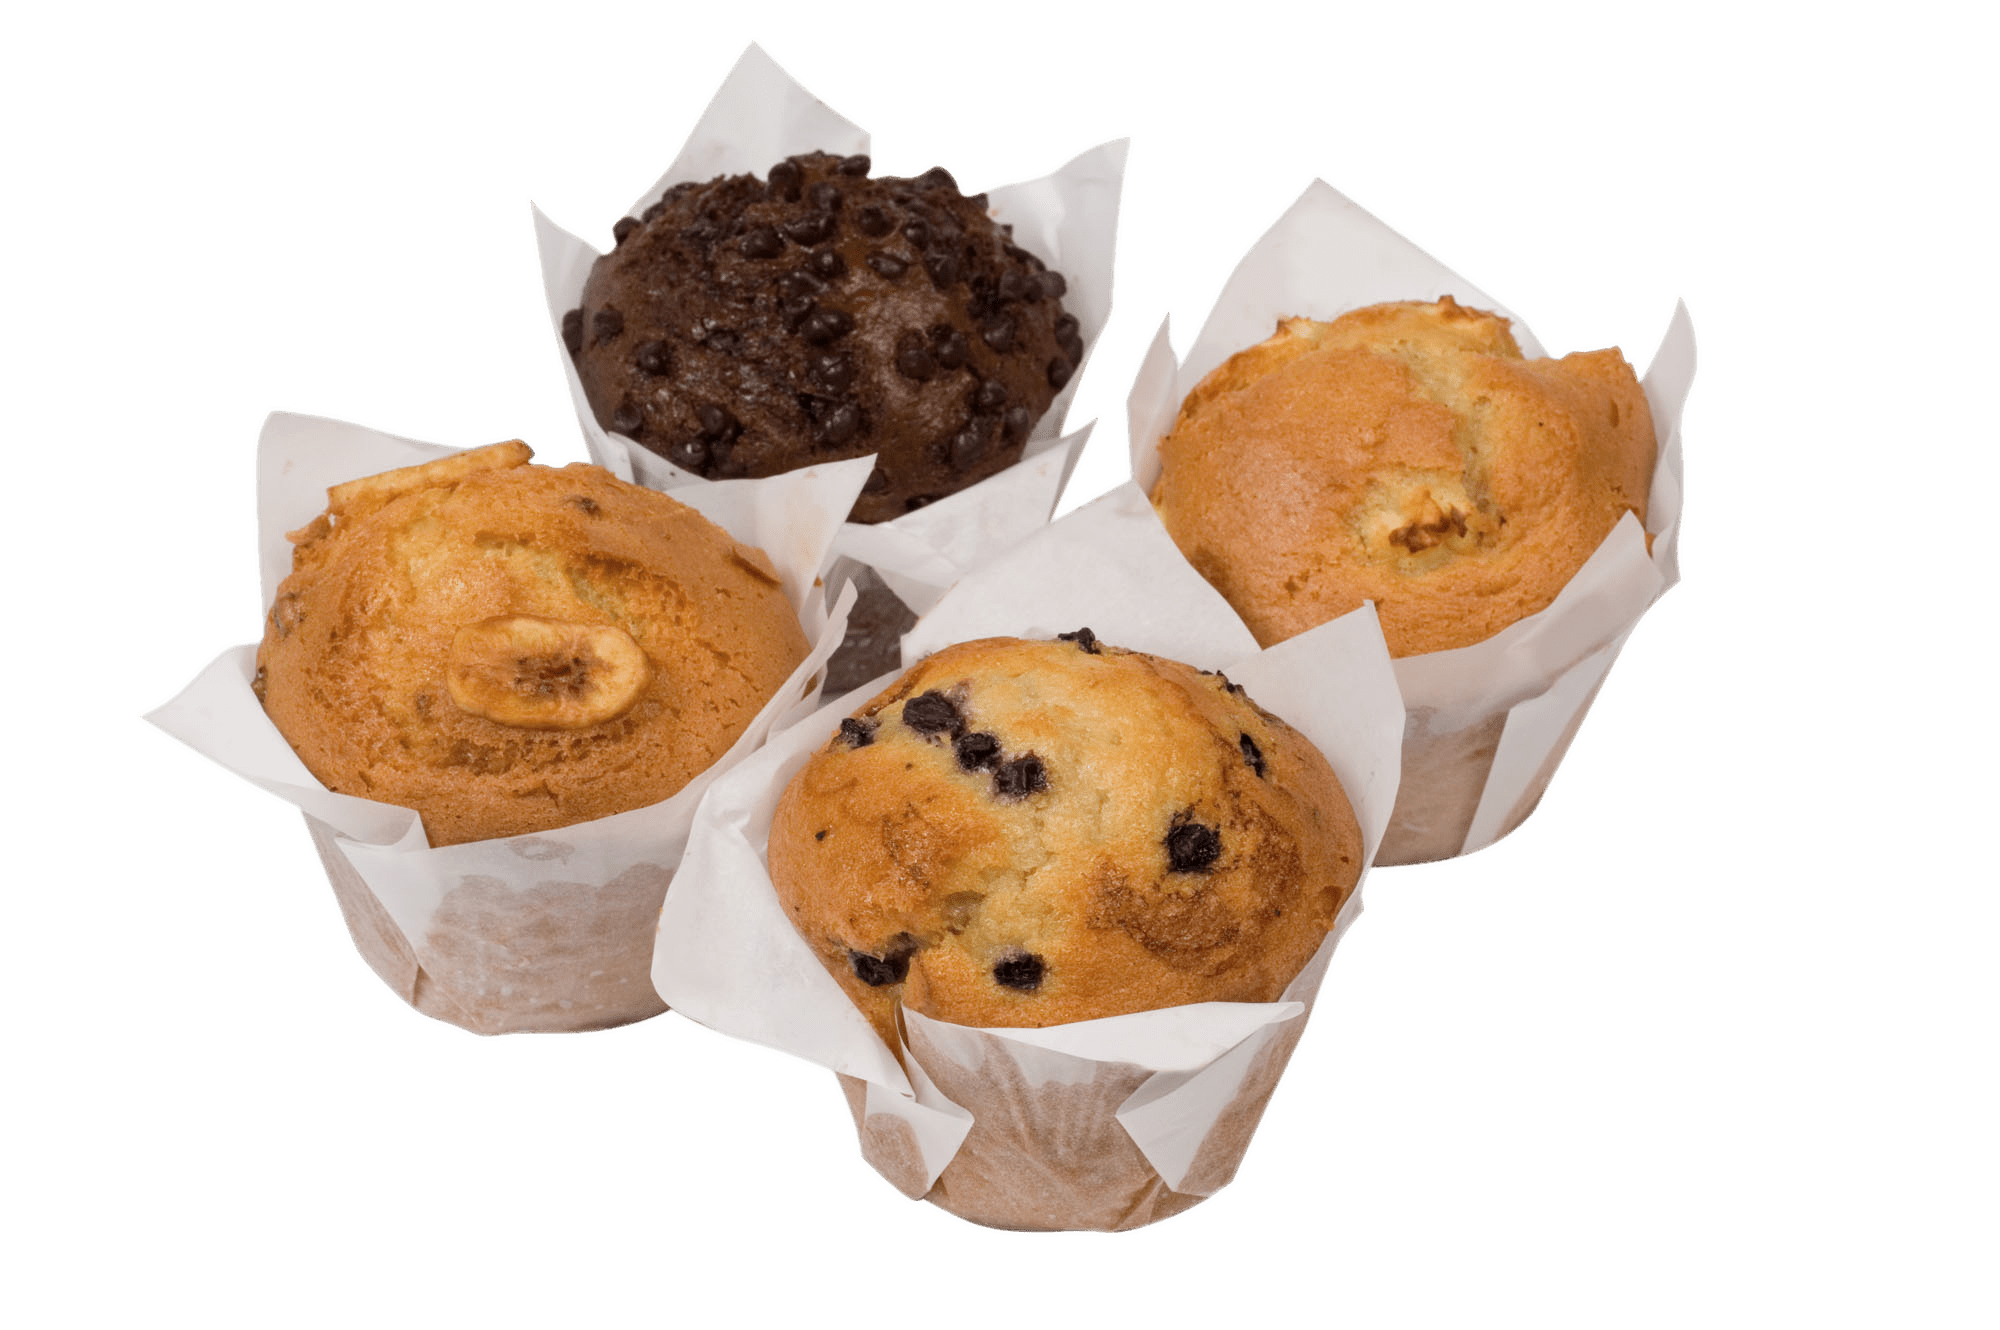 Muffin clipart english muffin. Selection transparent png stickpng